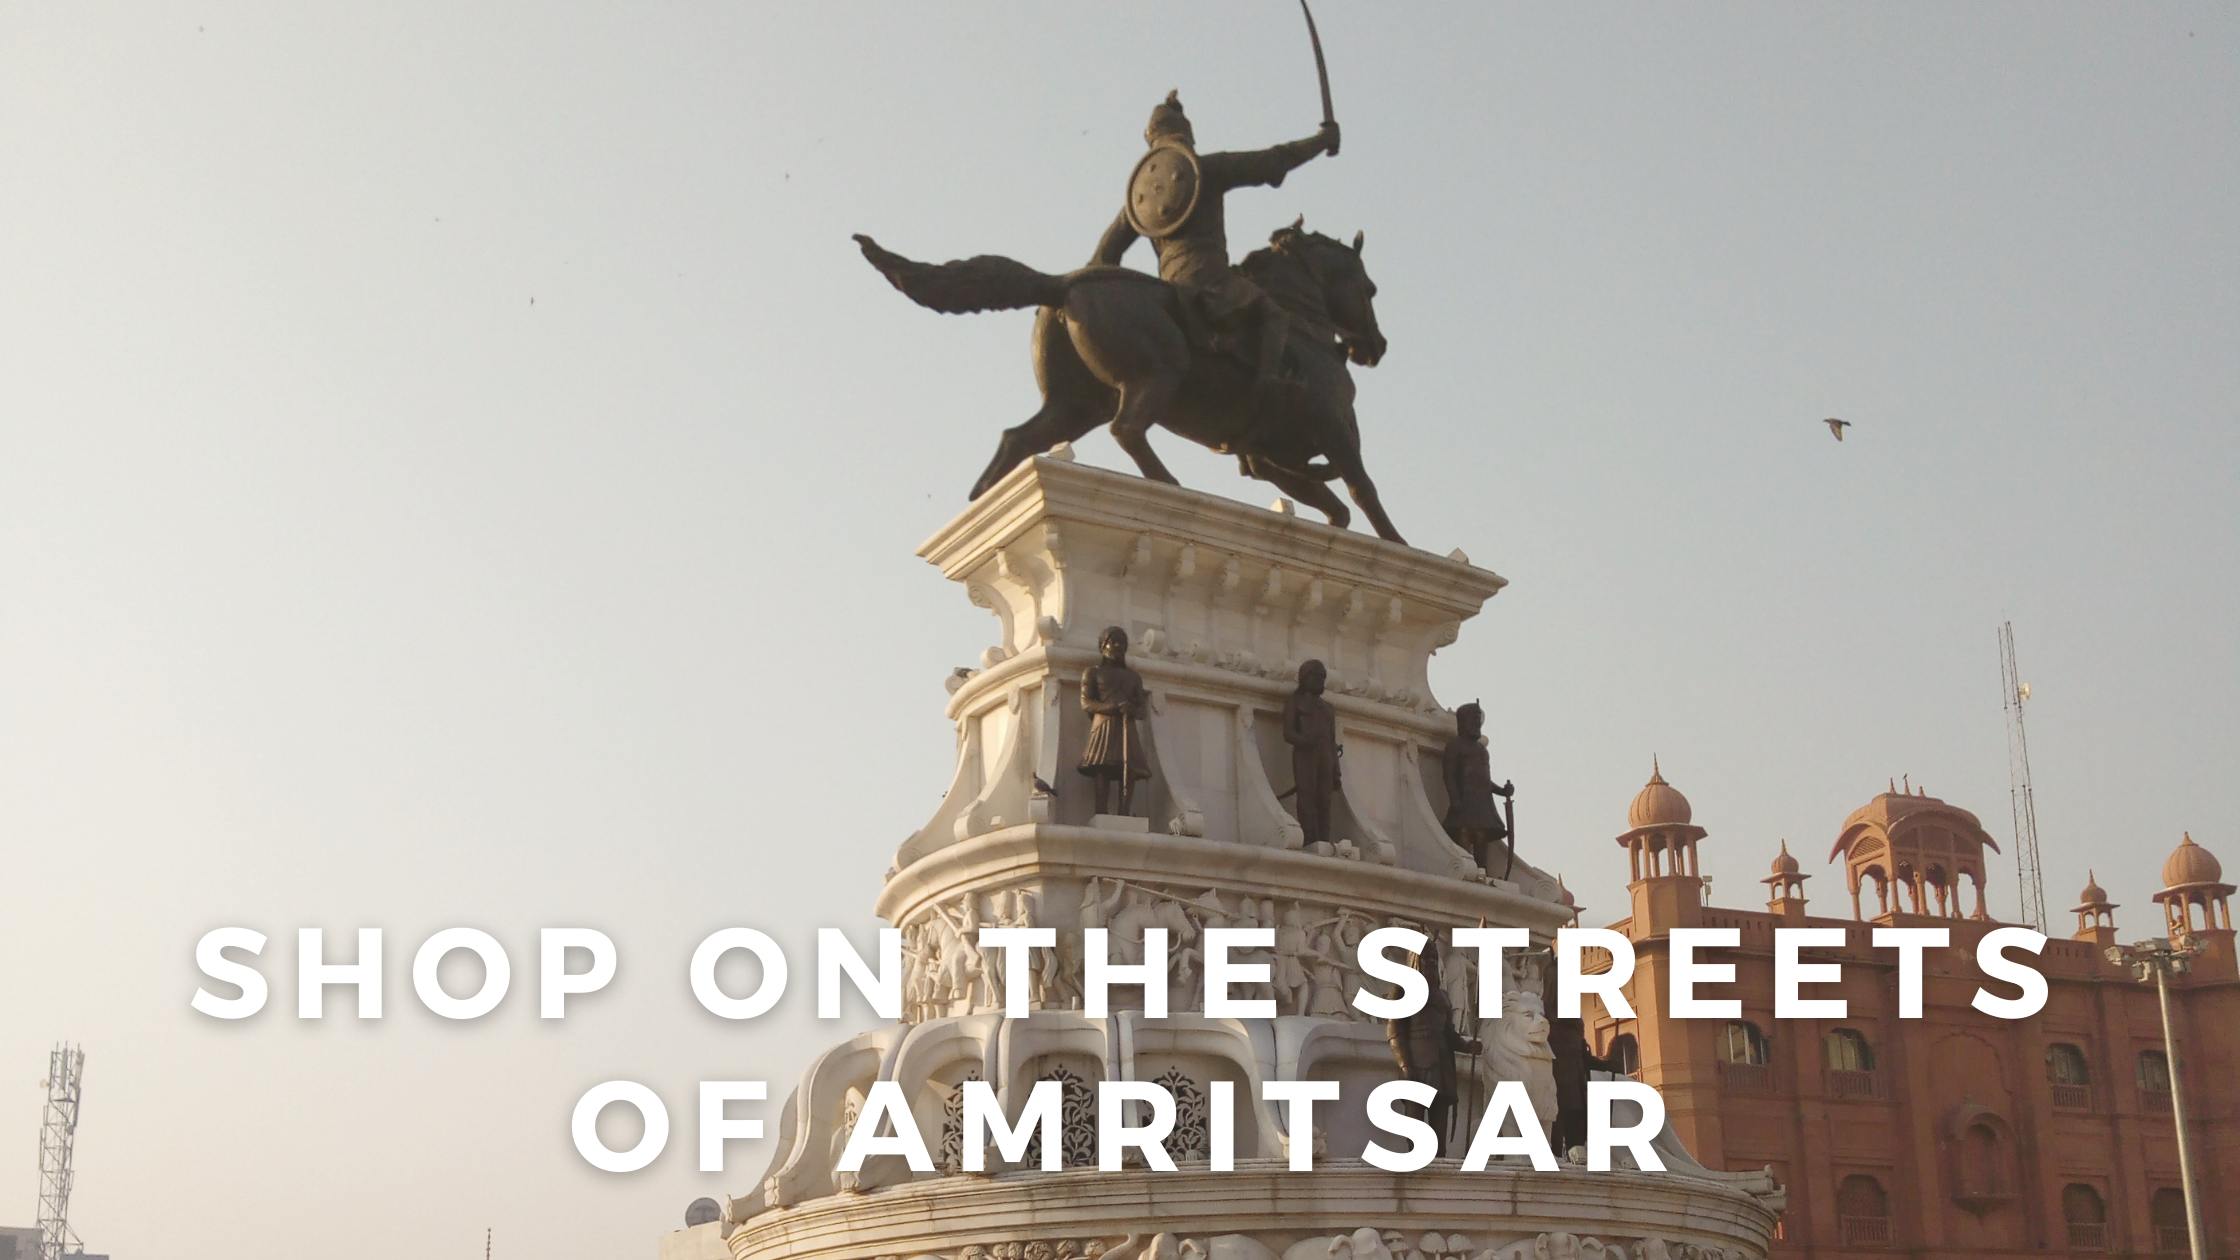 8 Shopping places to visit in Amritsar